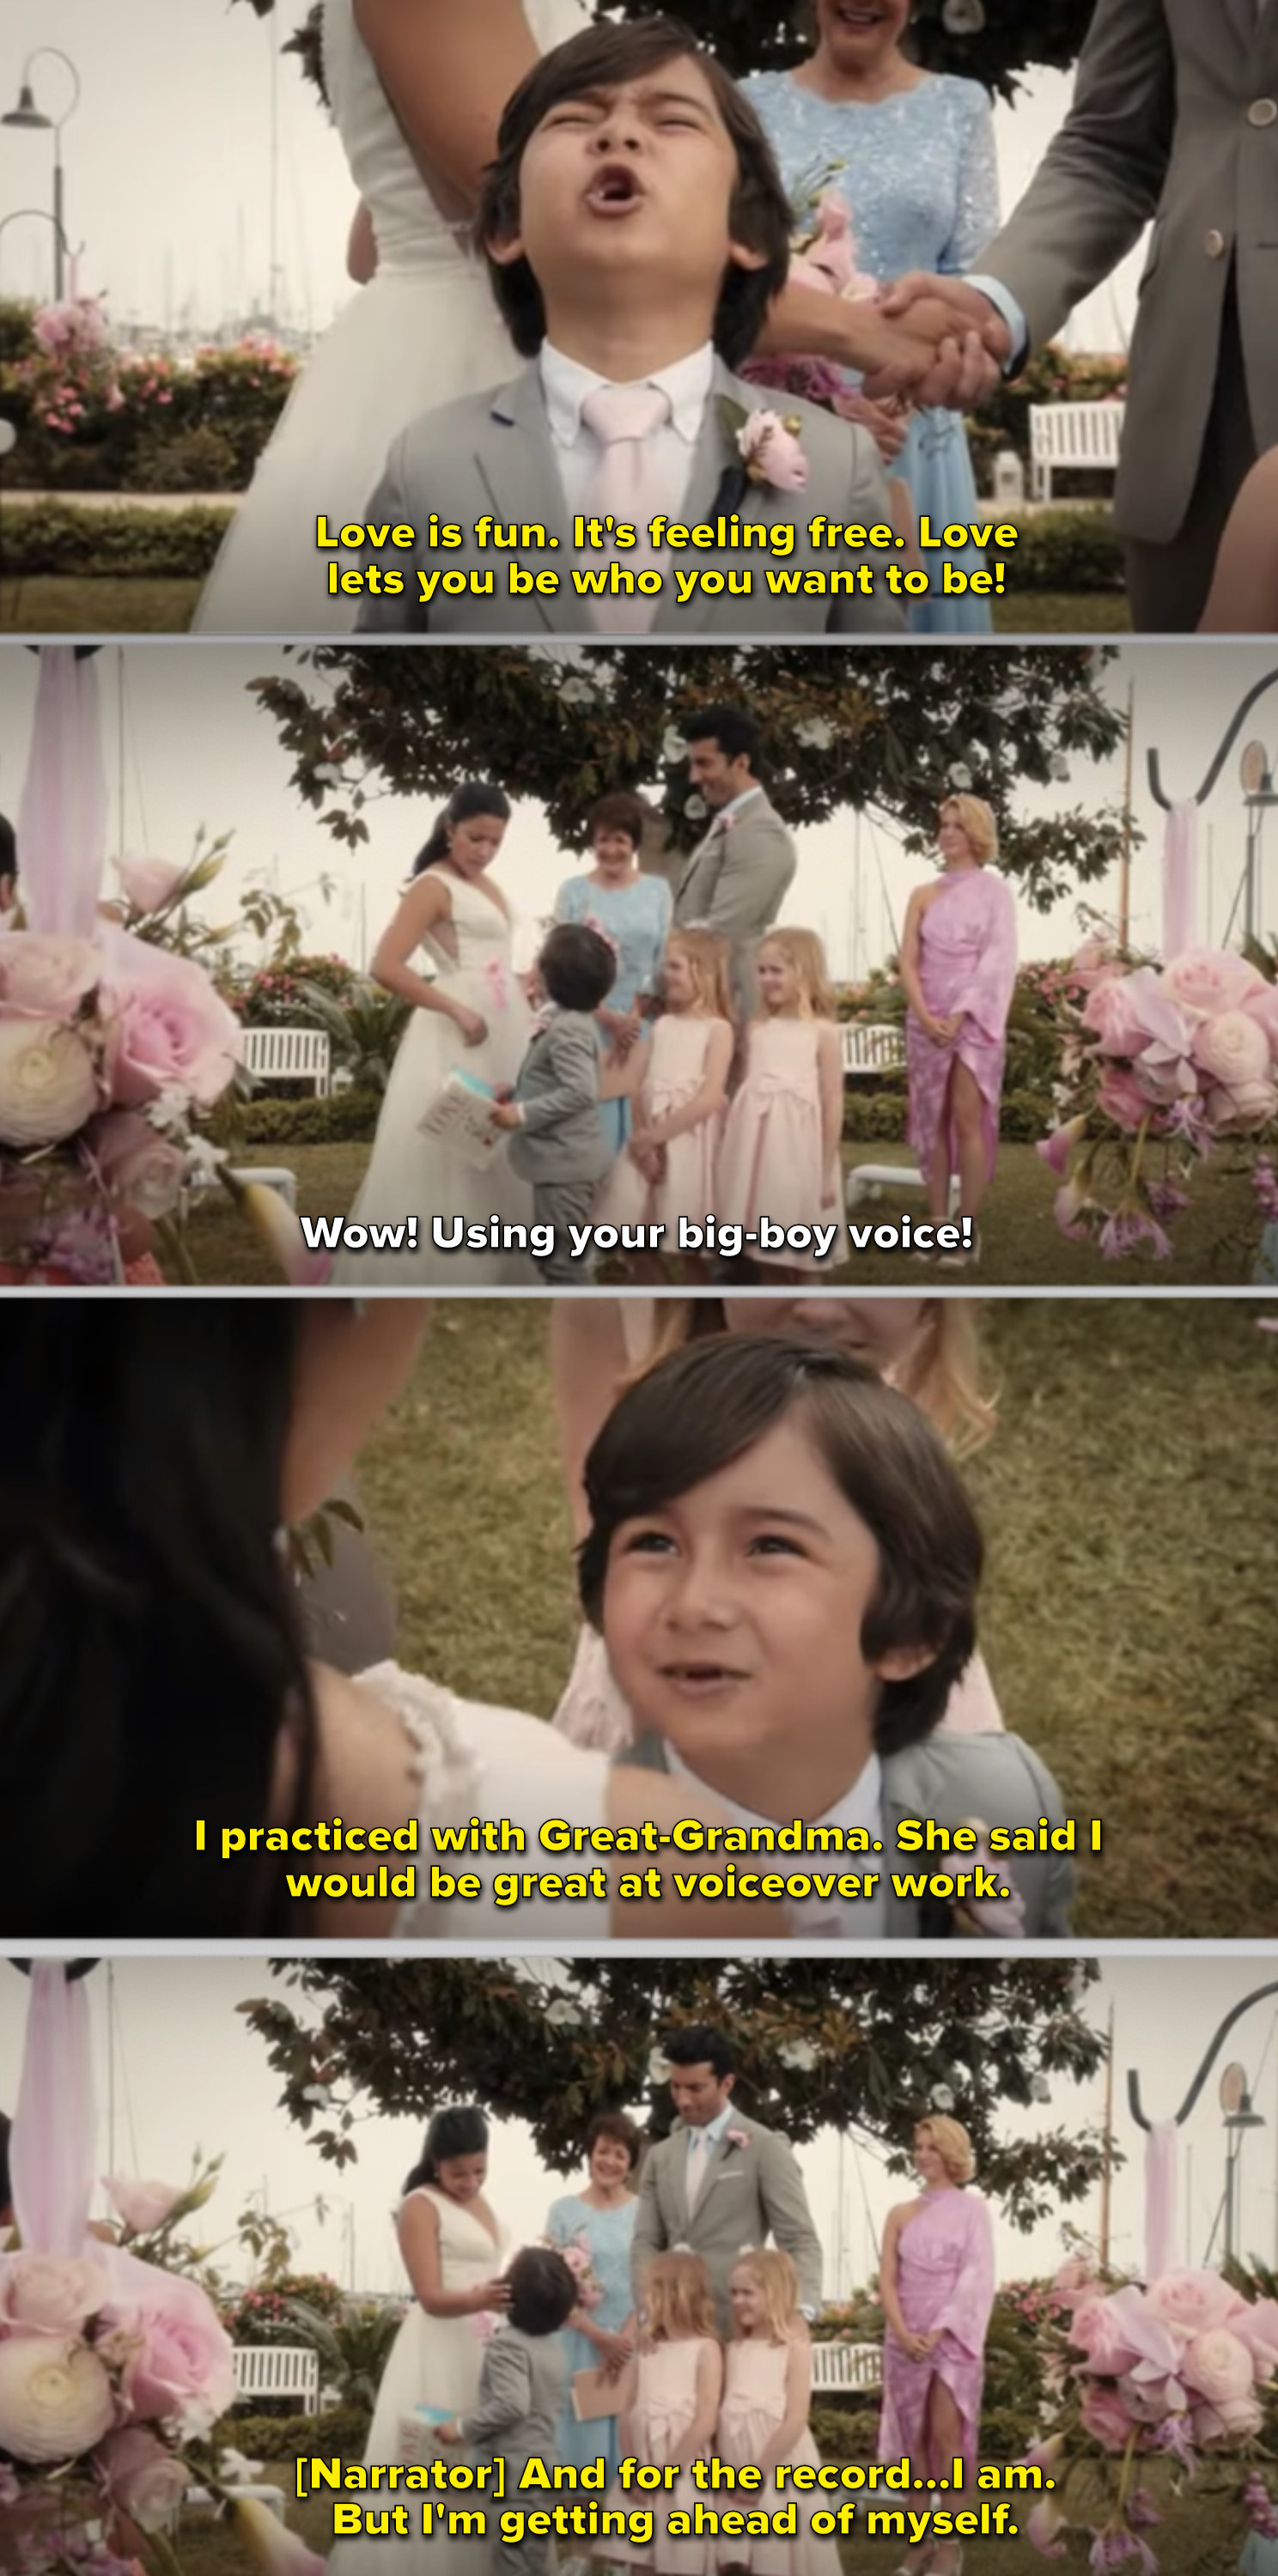 Jane on her wedding day talking to her son